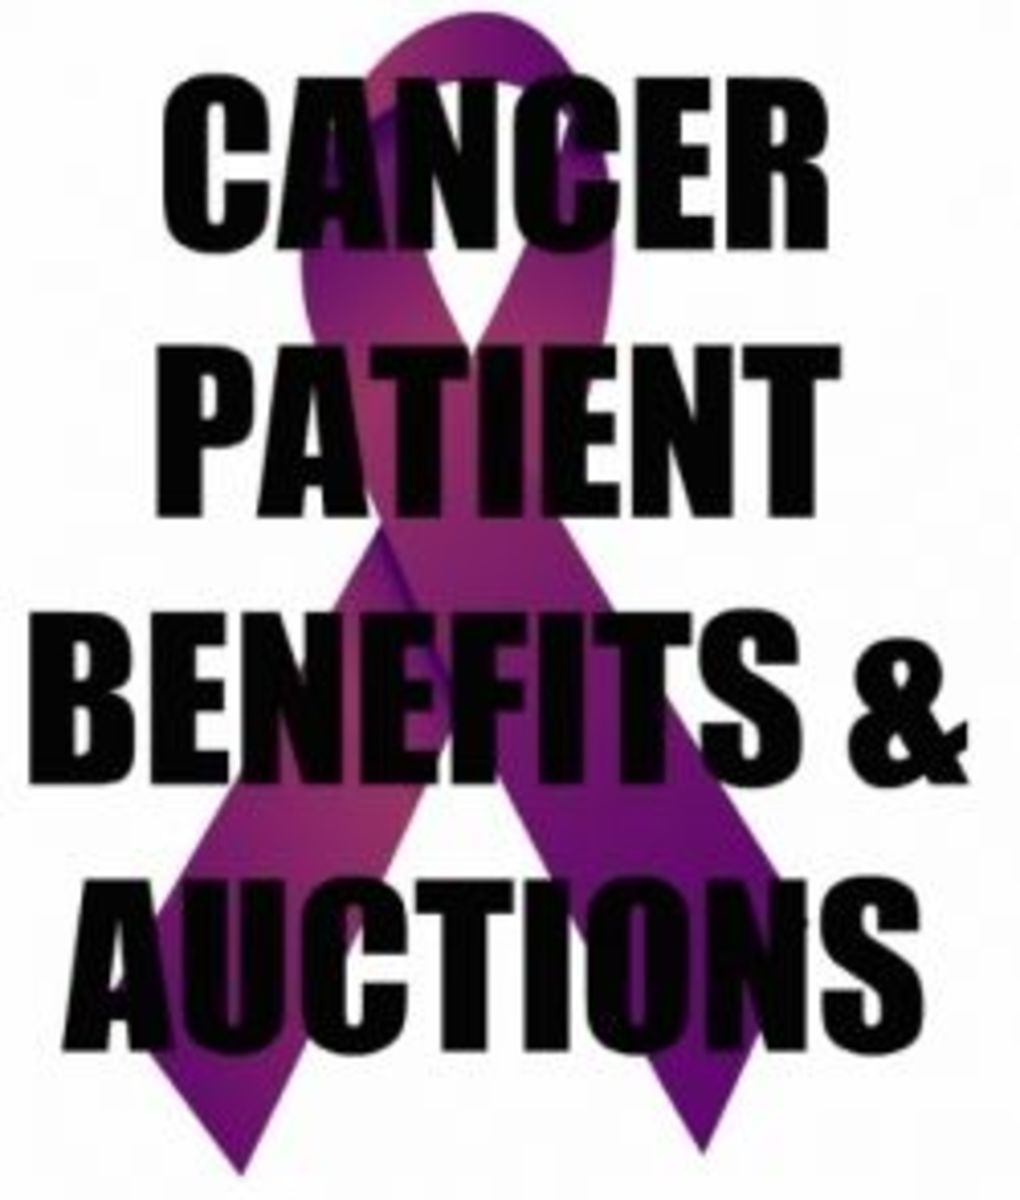 Cancer Patient Benefit and Auction Planning